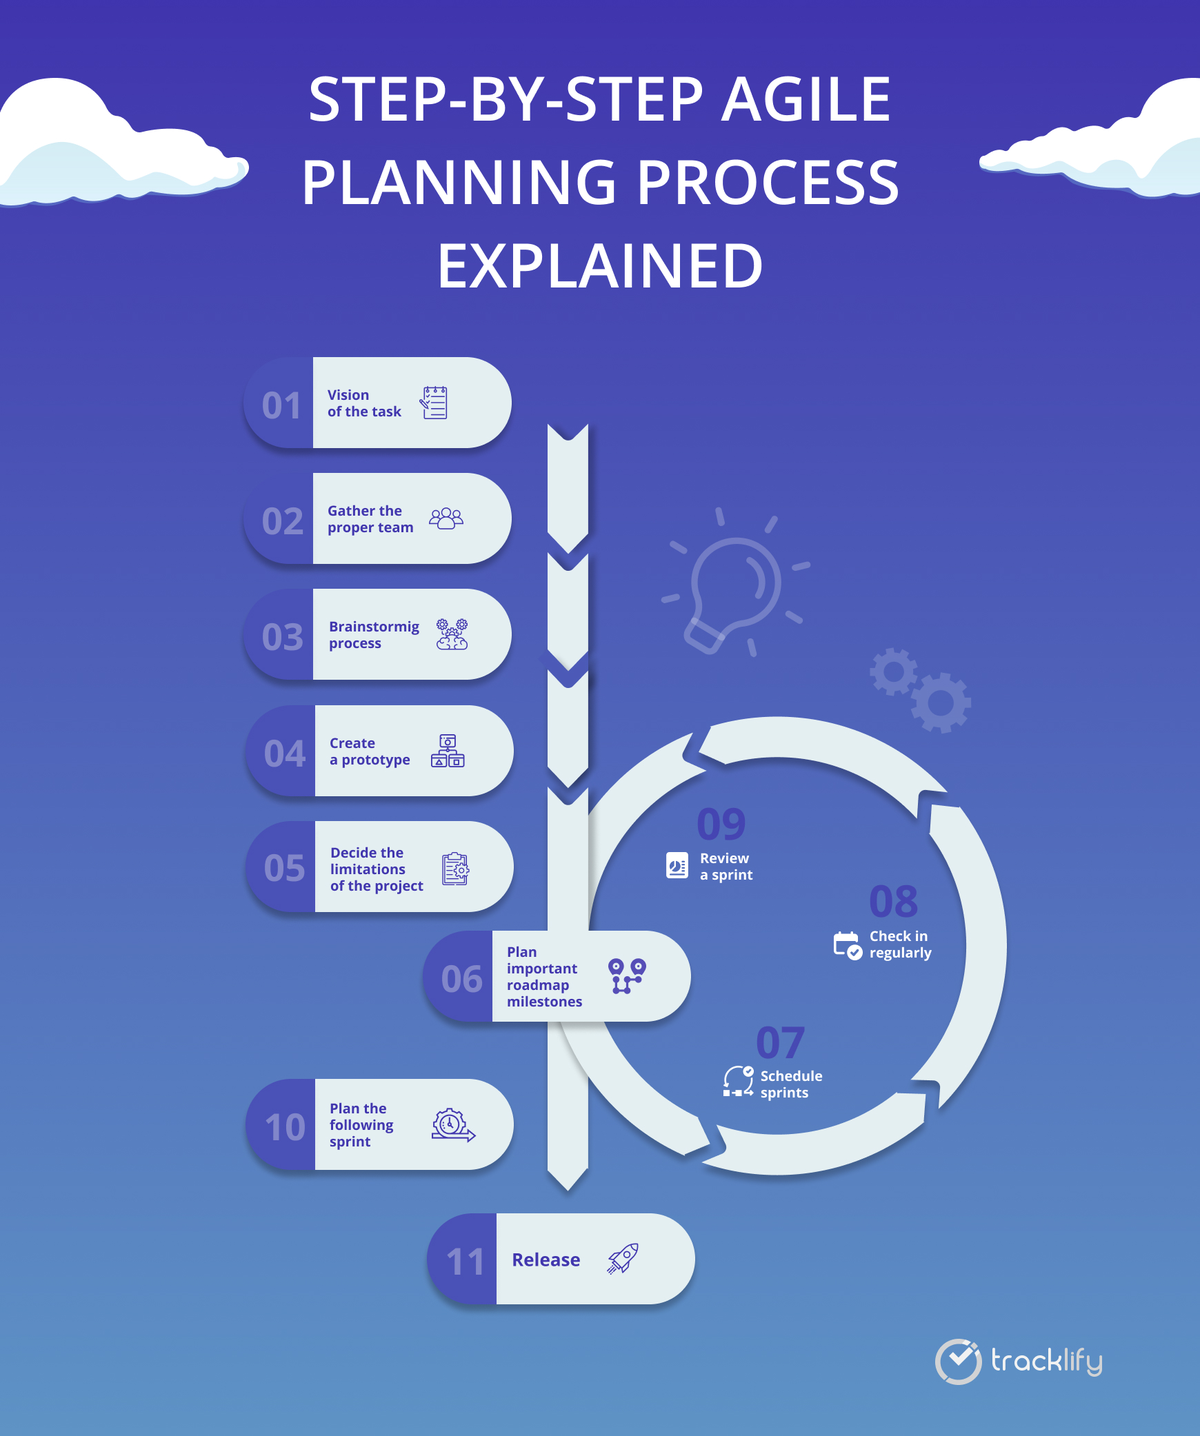 Step-by-step Agile planning process